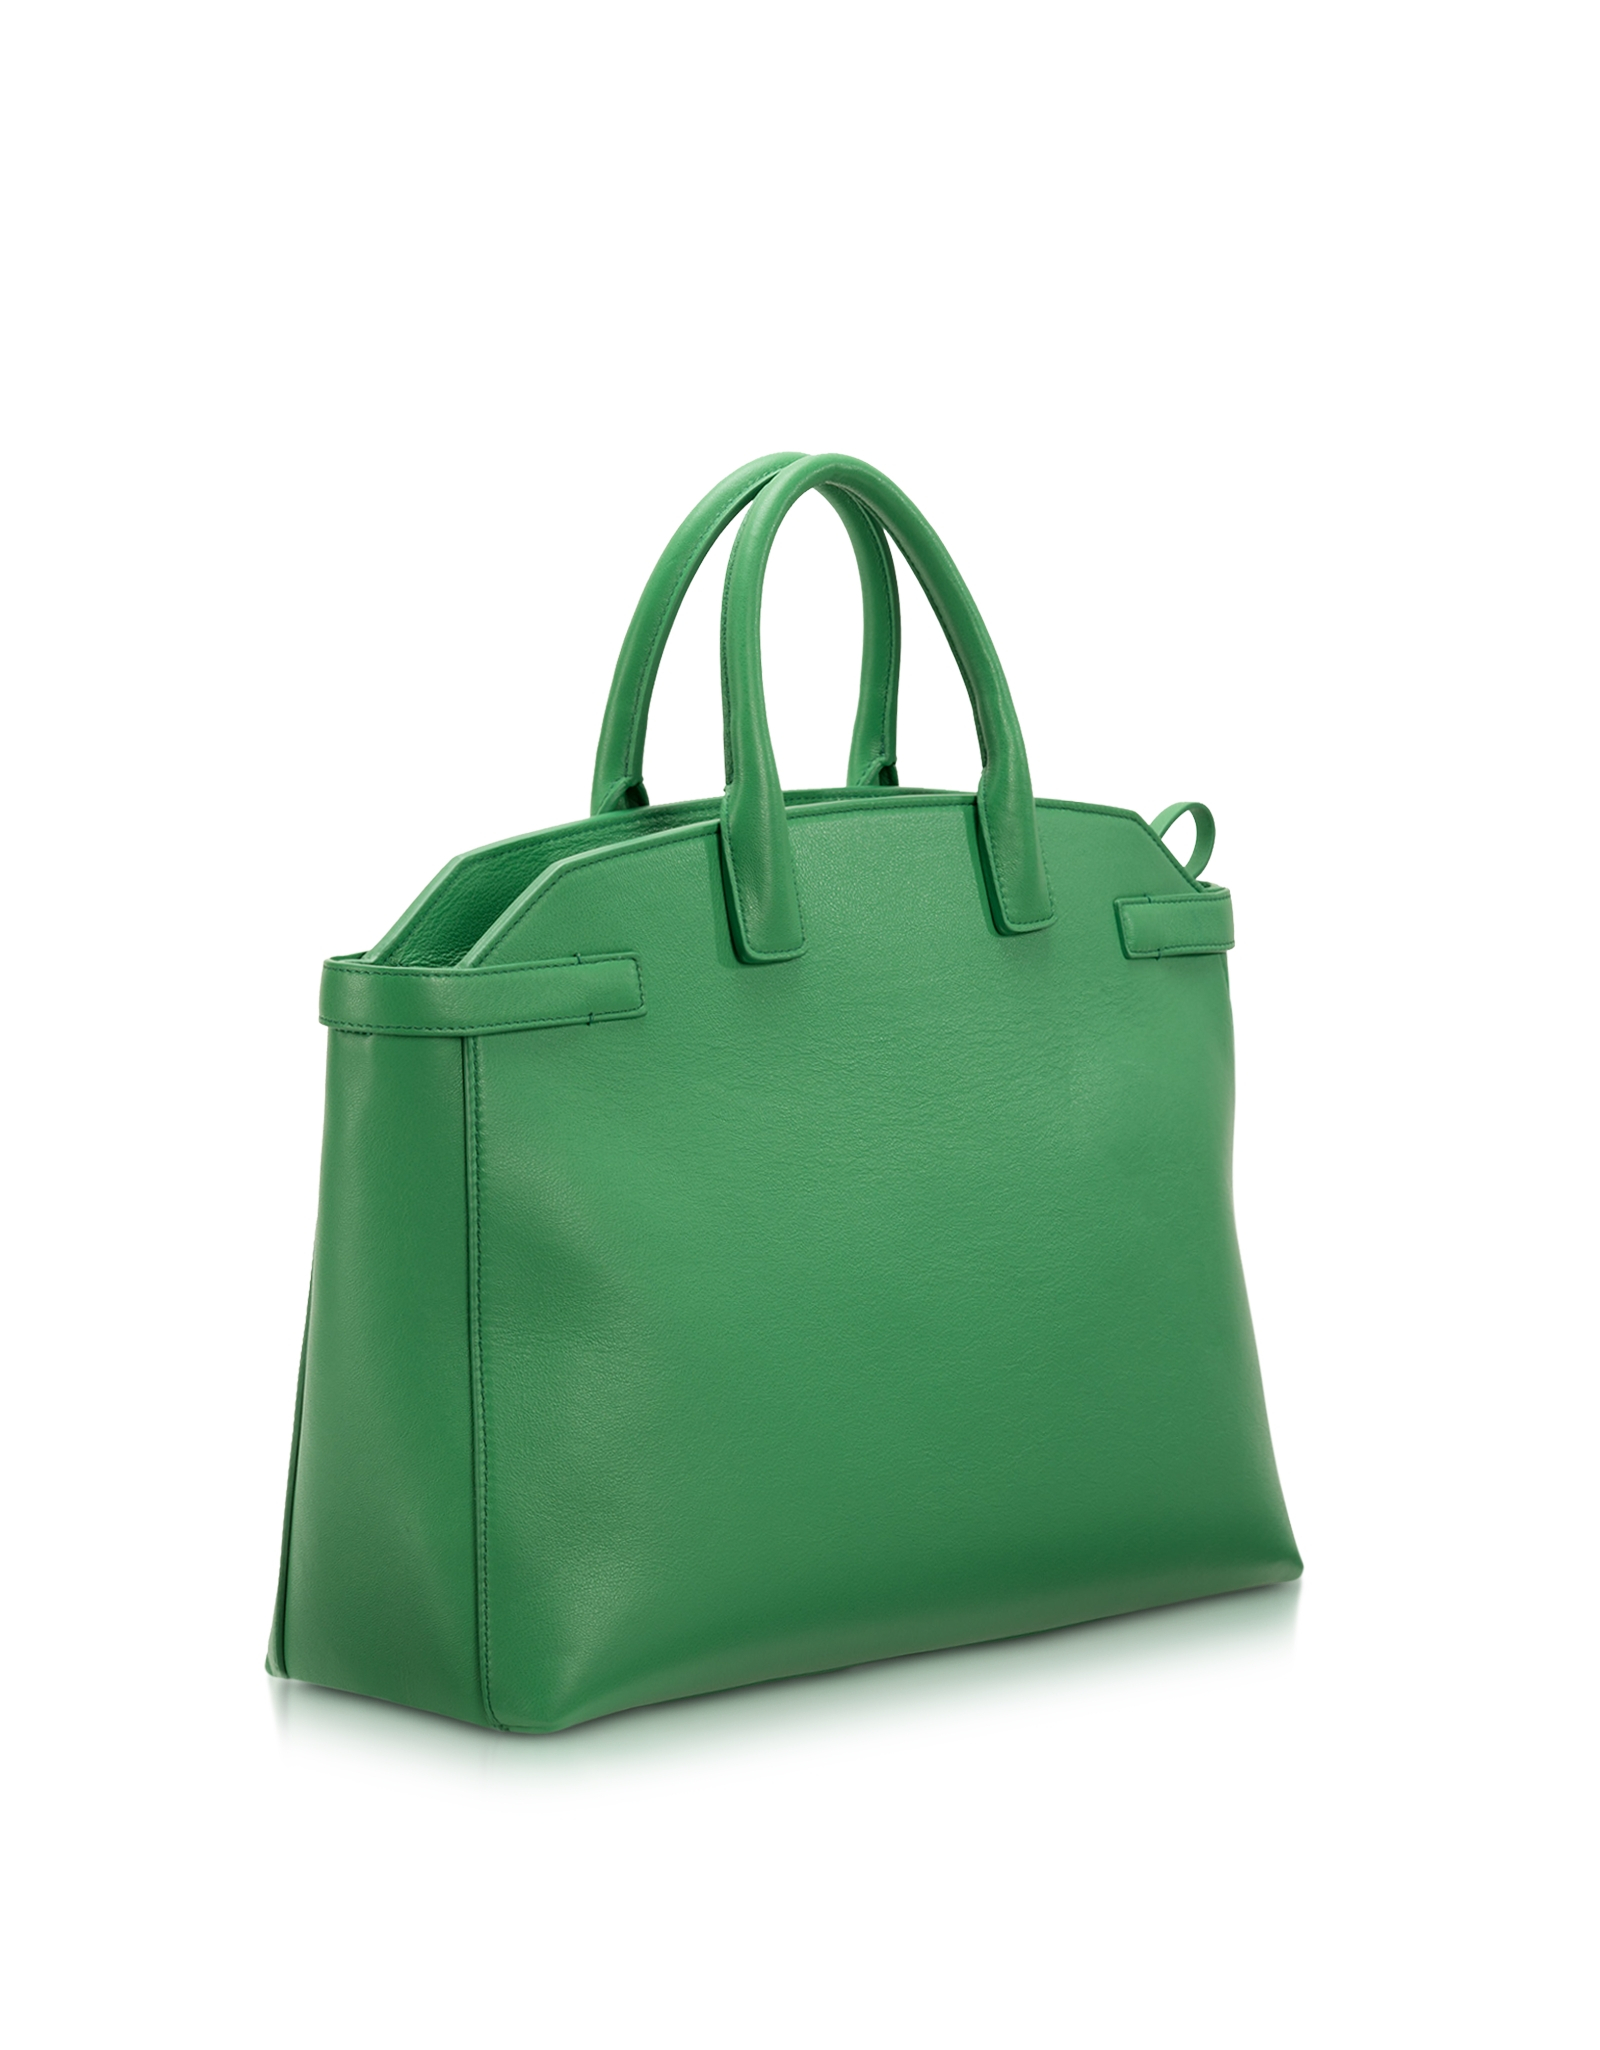 Emerald Green Leather Handbags - Best Bag Color Ideas